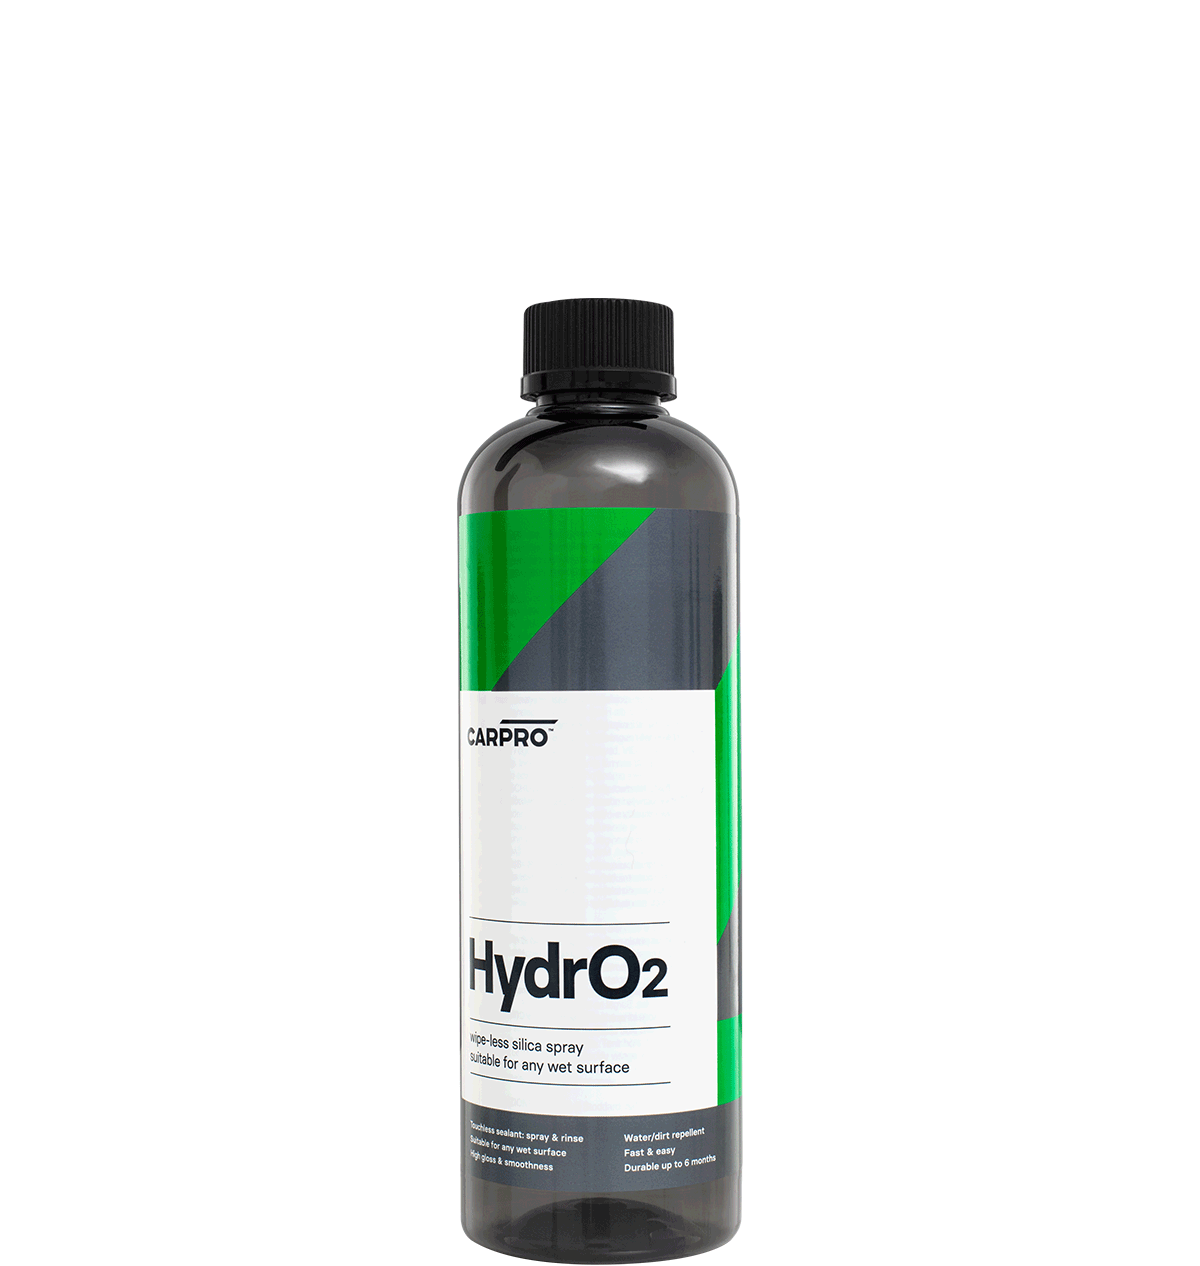 HydroO2